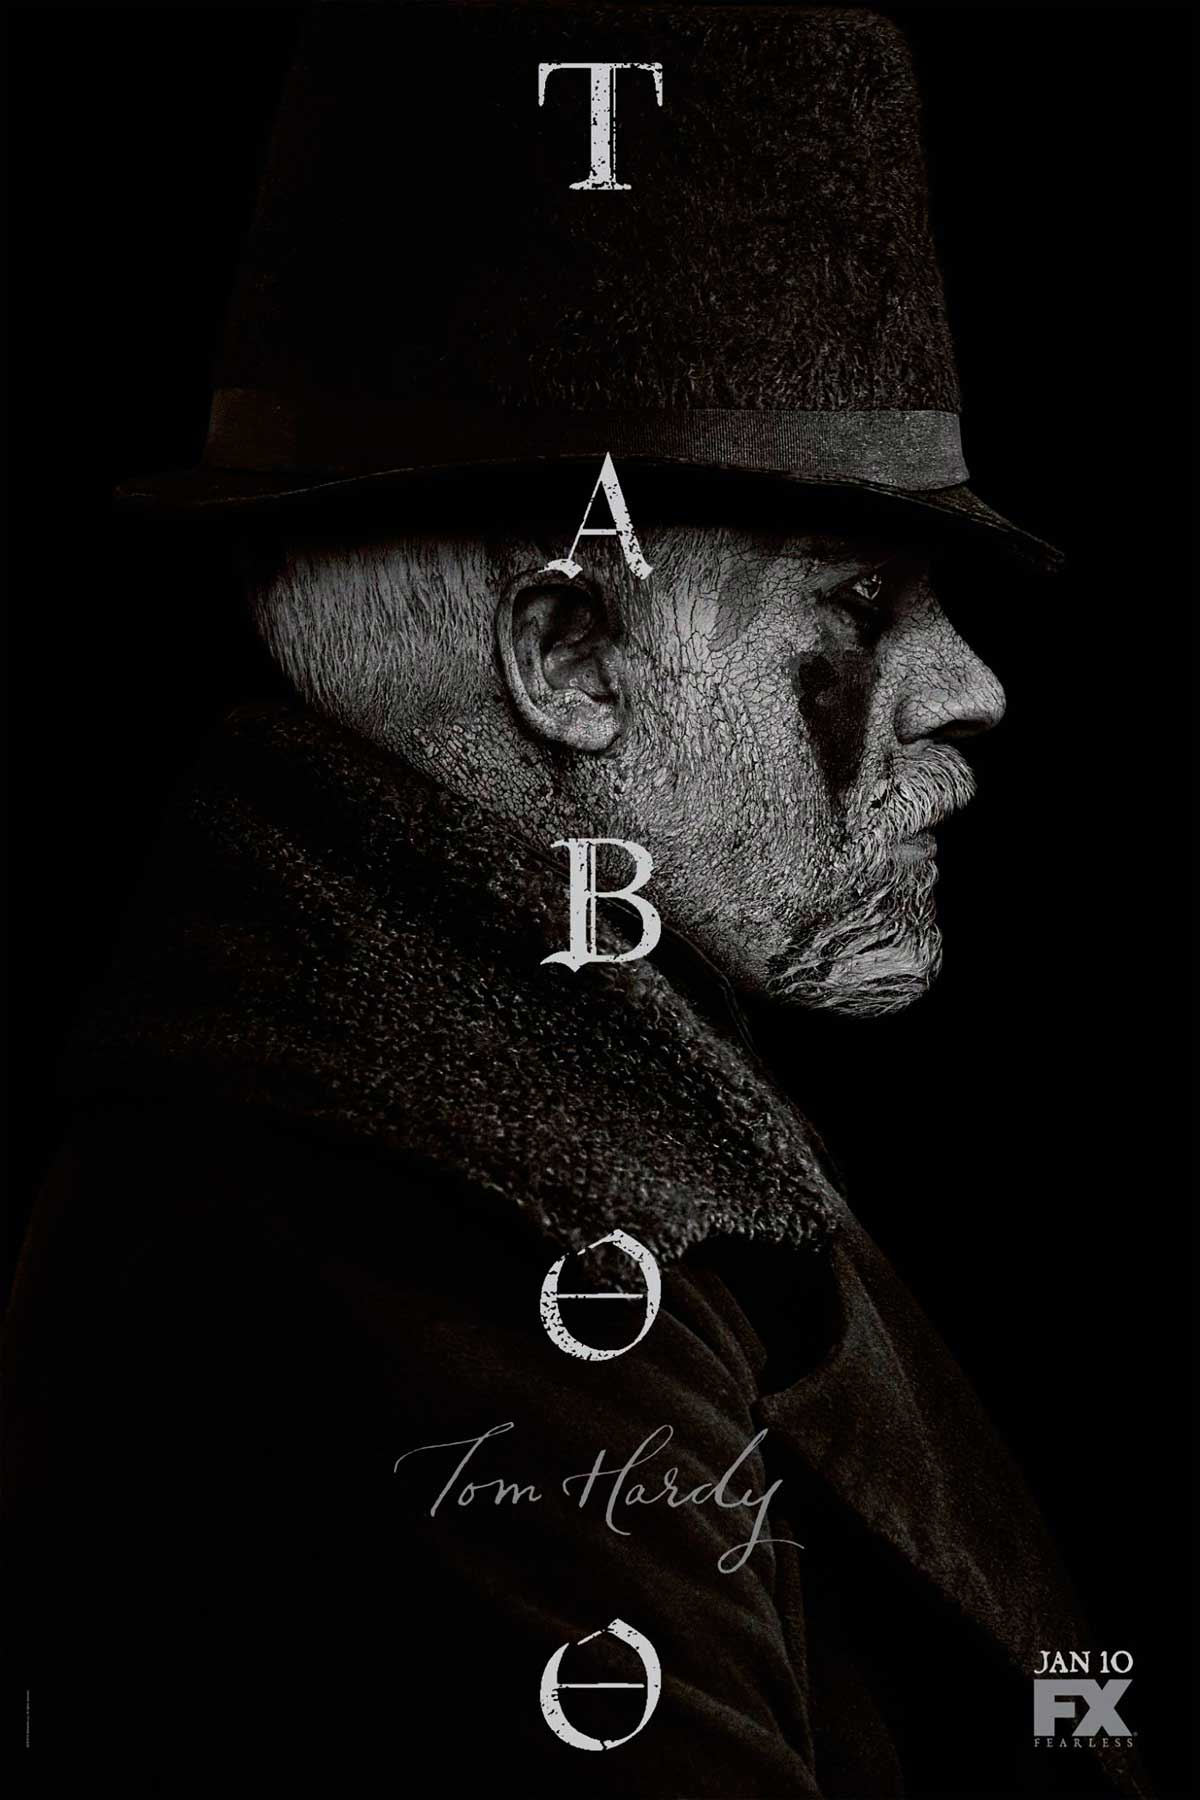 Taboo ¿mejor que Game of Thrones?